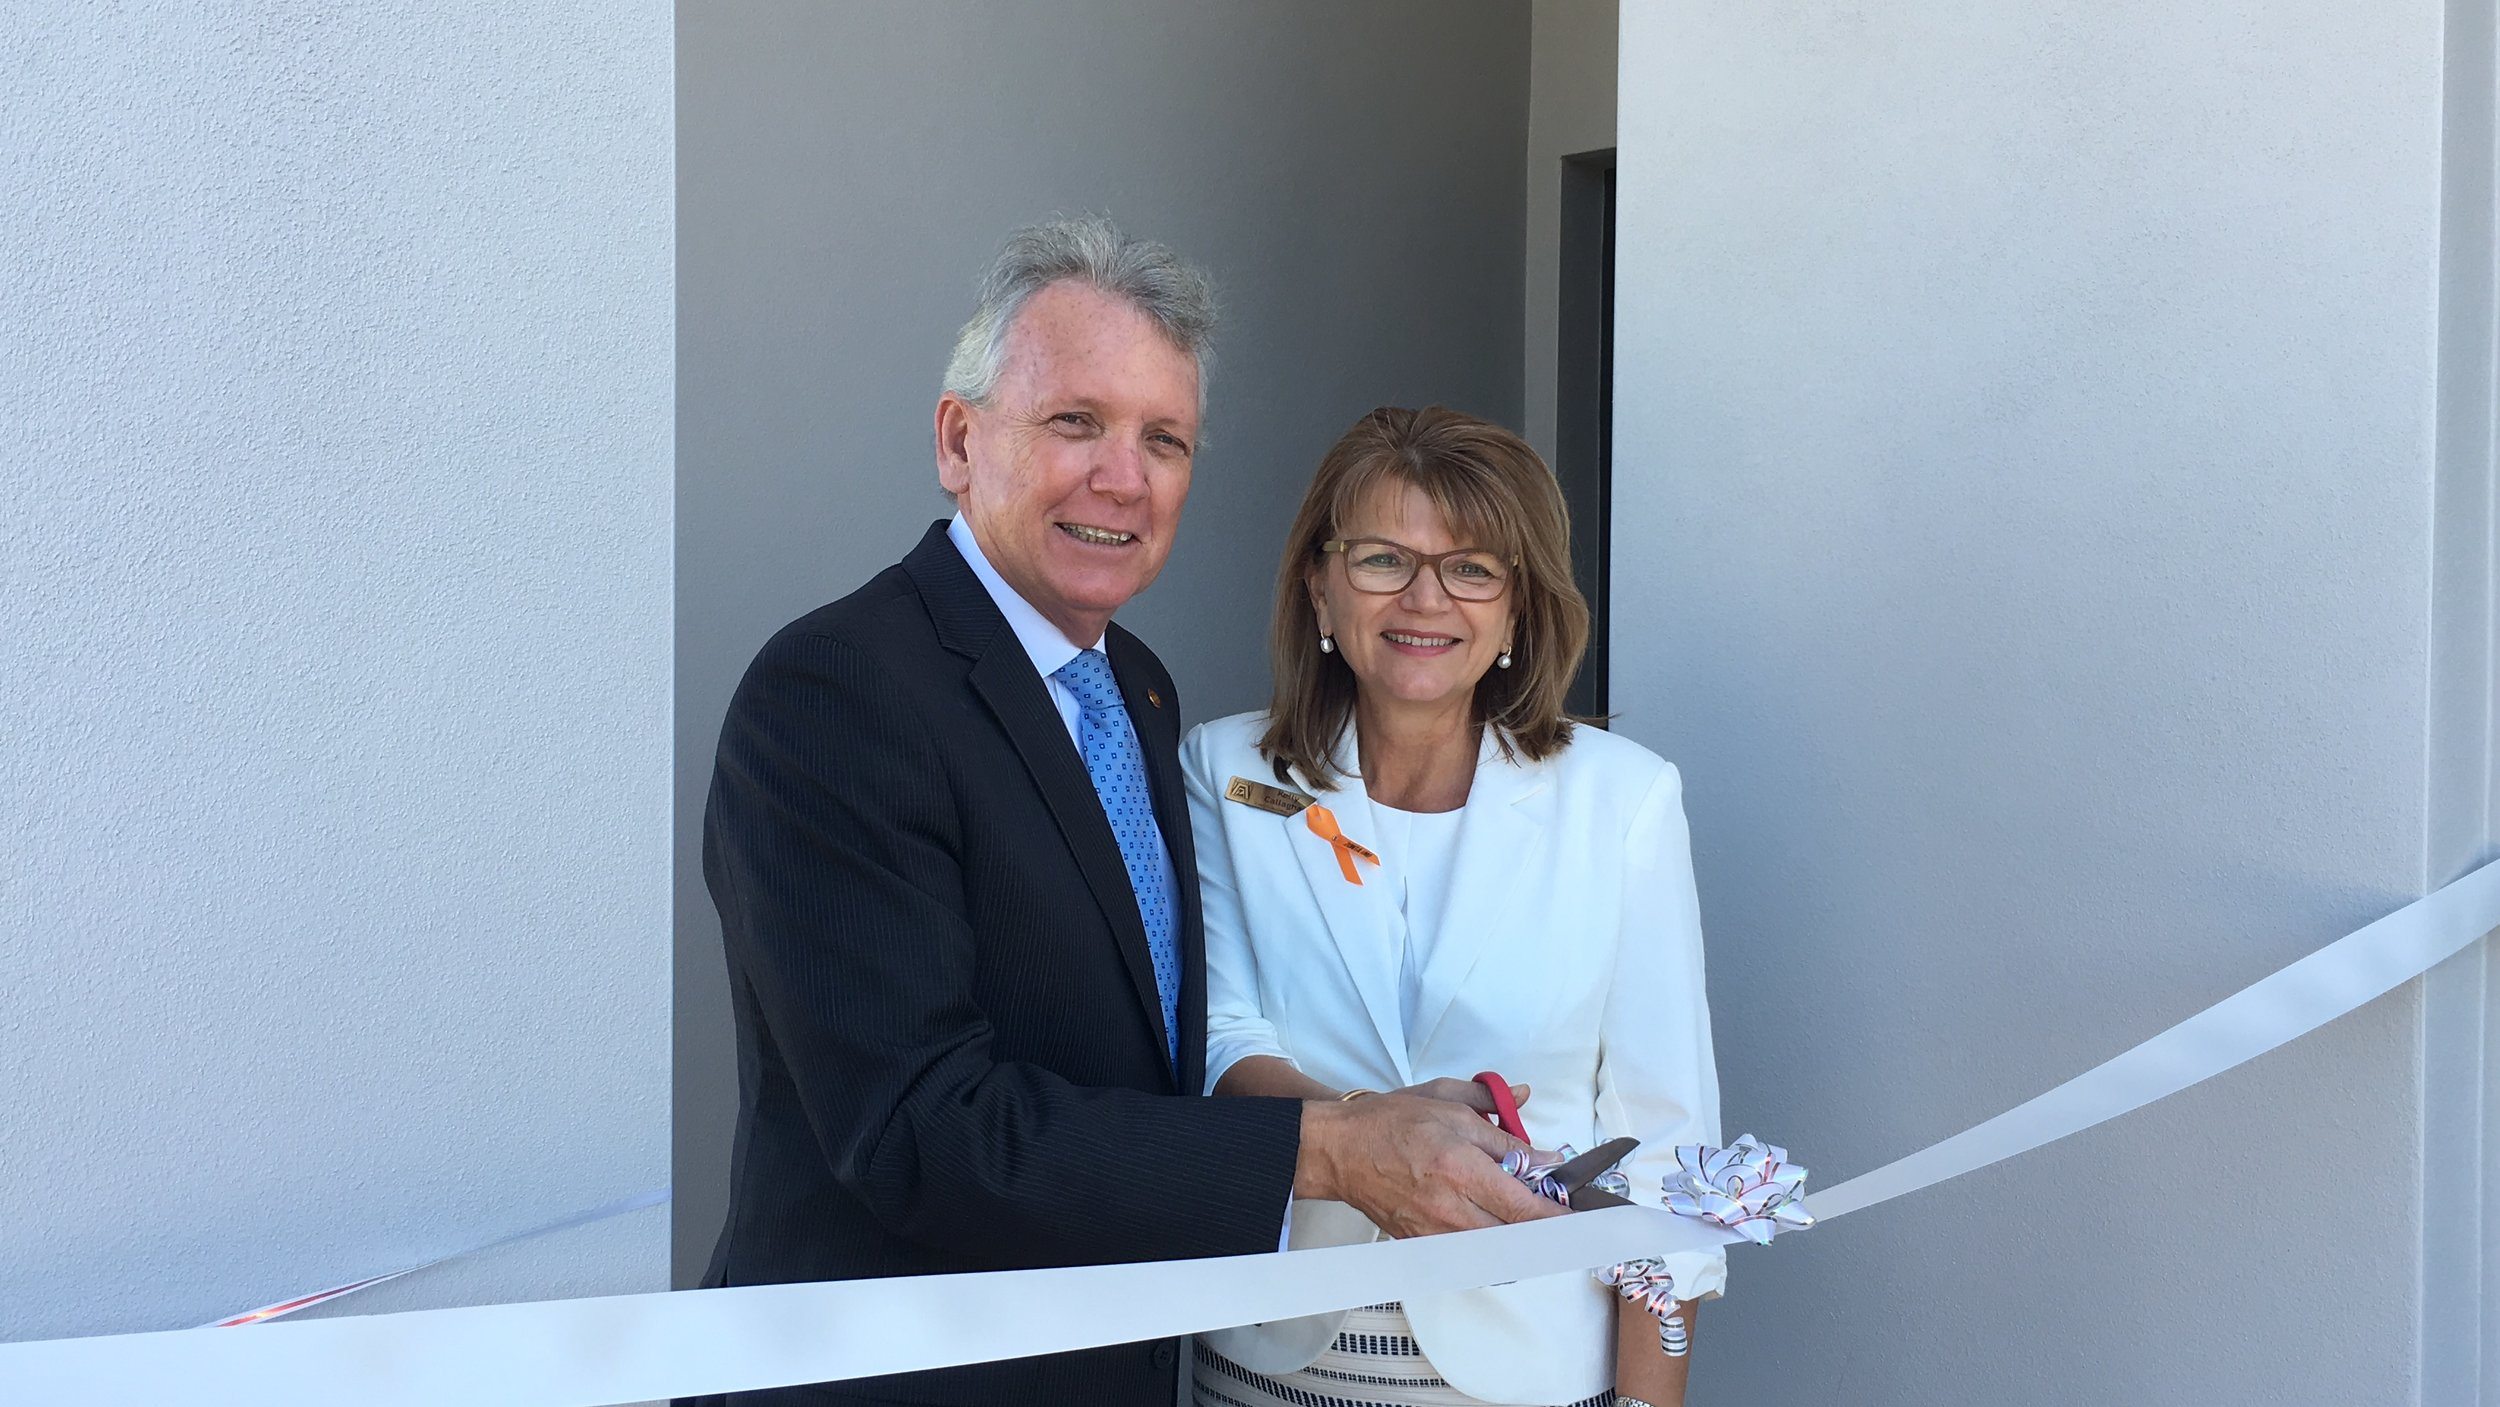 Mark McArdle and Zonta President Kelly Callaghan cutting the ribbon the new DV house in Caloundra